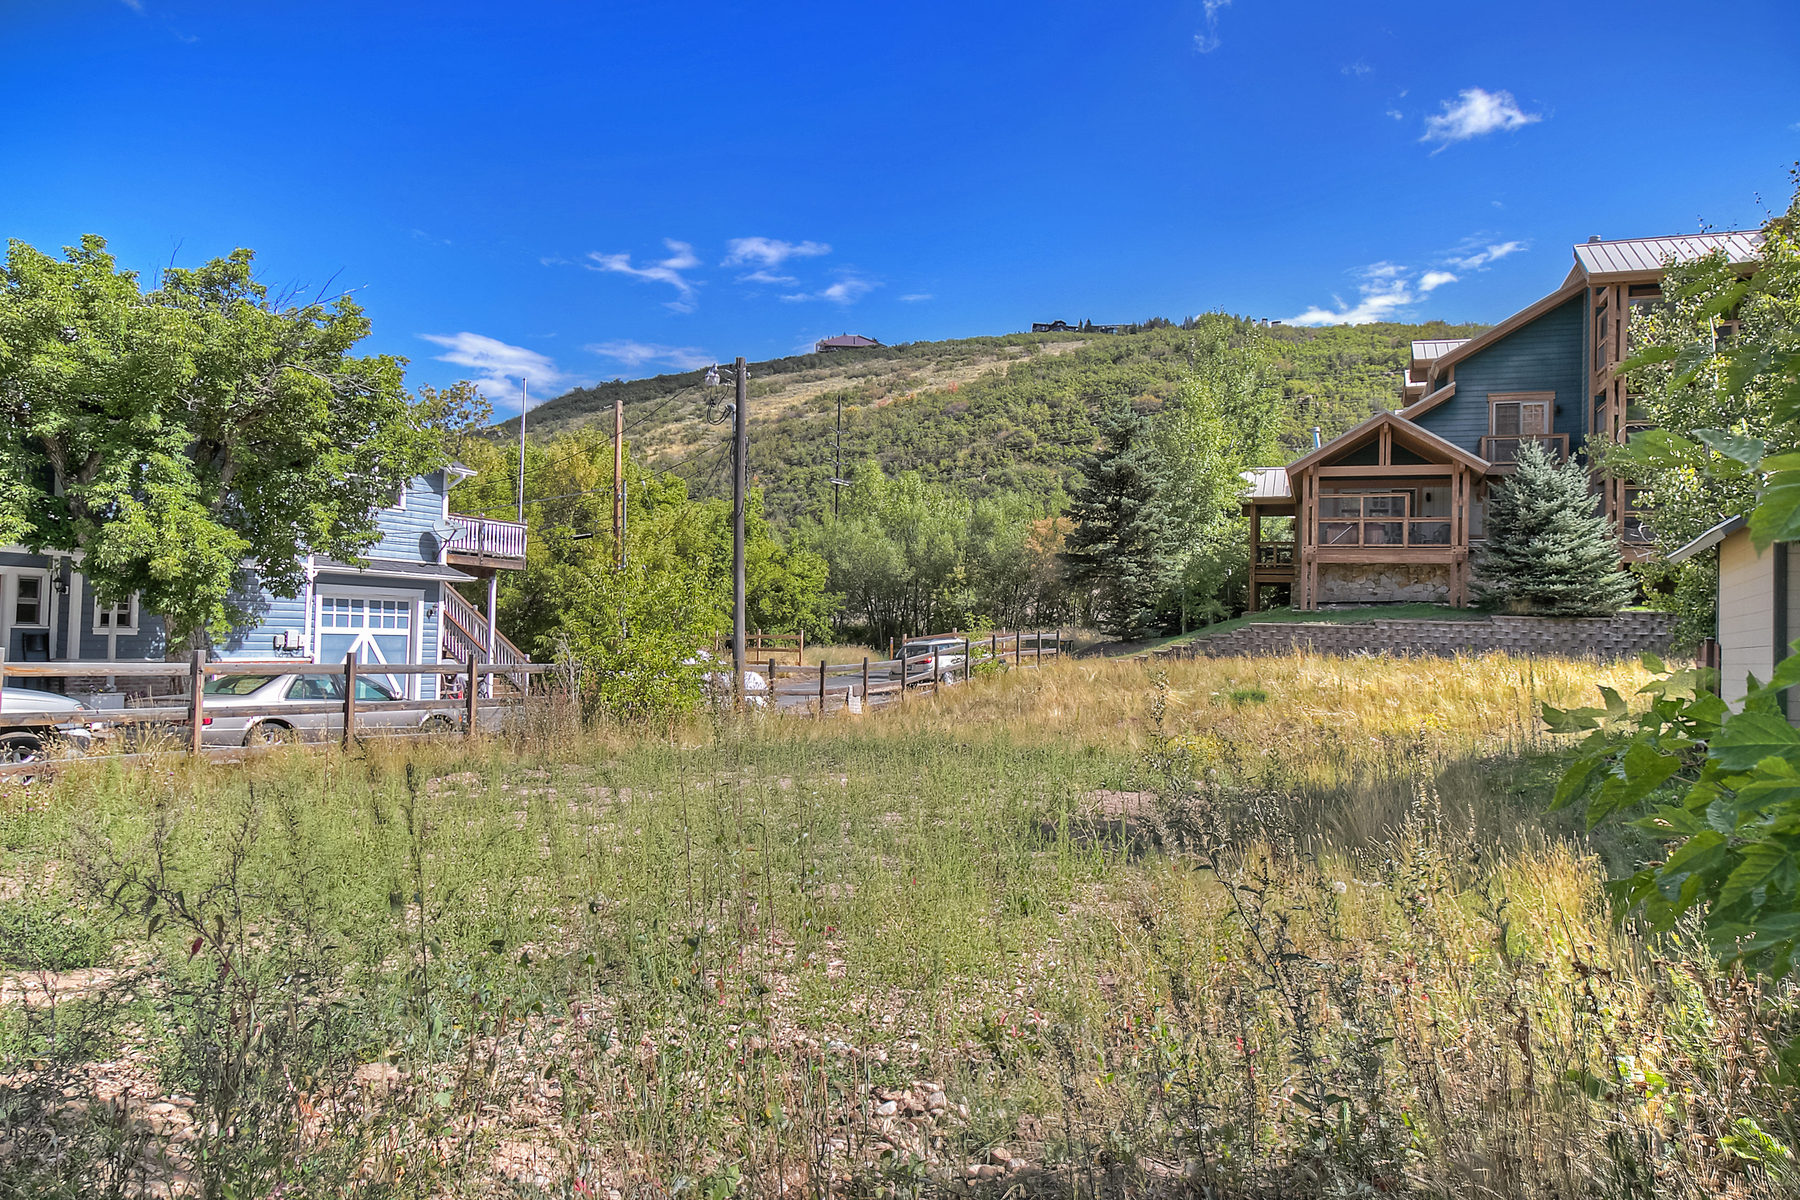 Terreno per Vendita alle ore 3 Lot Development Opportunity 1064 Park Ave Lot 15 & Lot 16 Park City, Utah, 84060 Stati Uniti